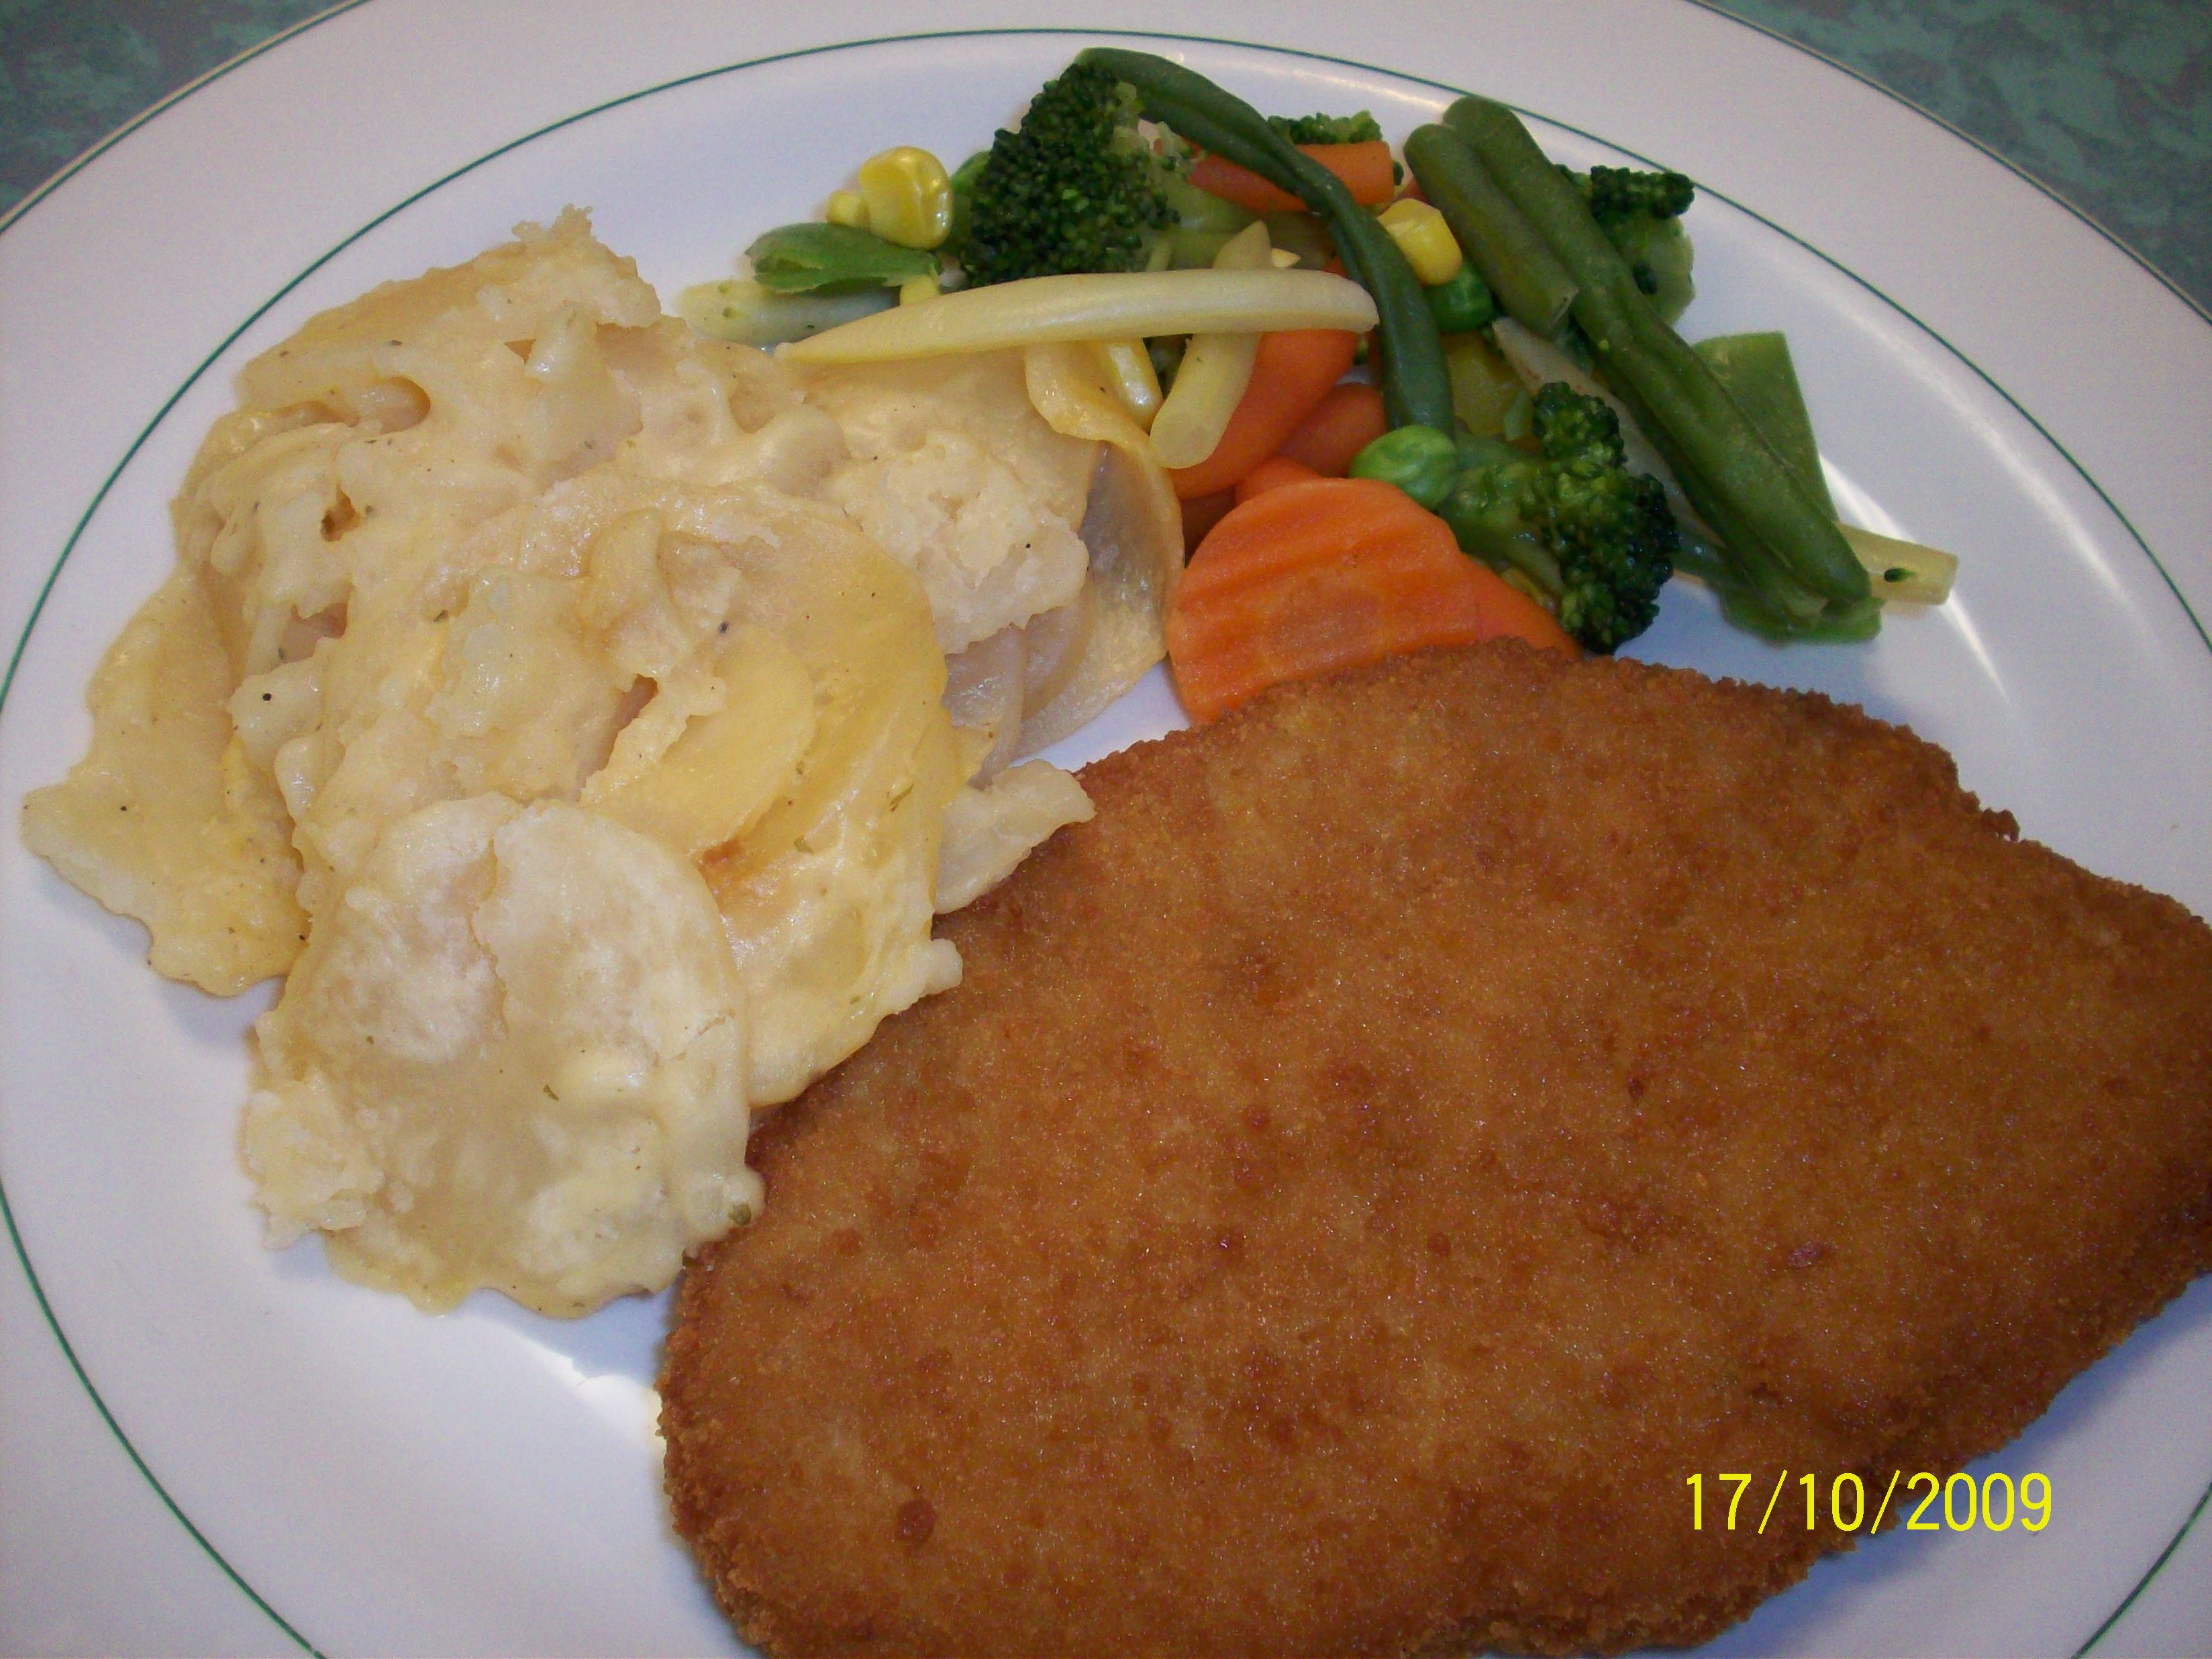 http://foodloader.net/cutie_2009-10-17_Breaded_Pork_Schnitzel_with_Scalopped_Potatoes_and.jpg